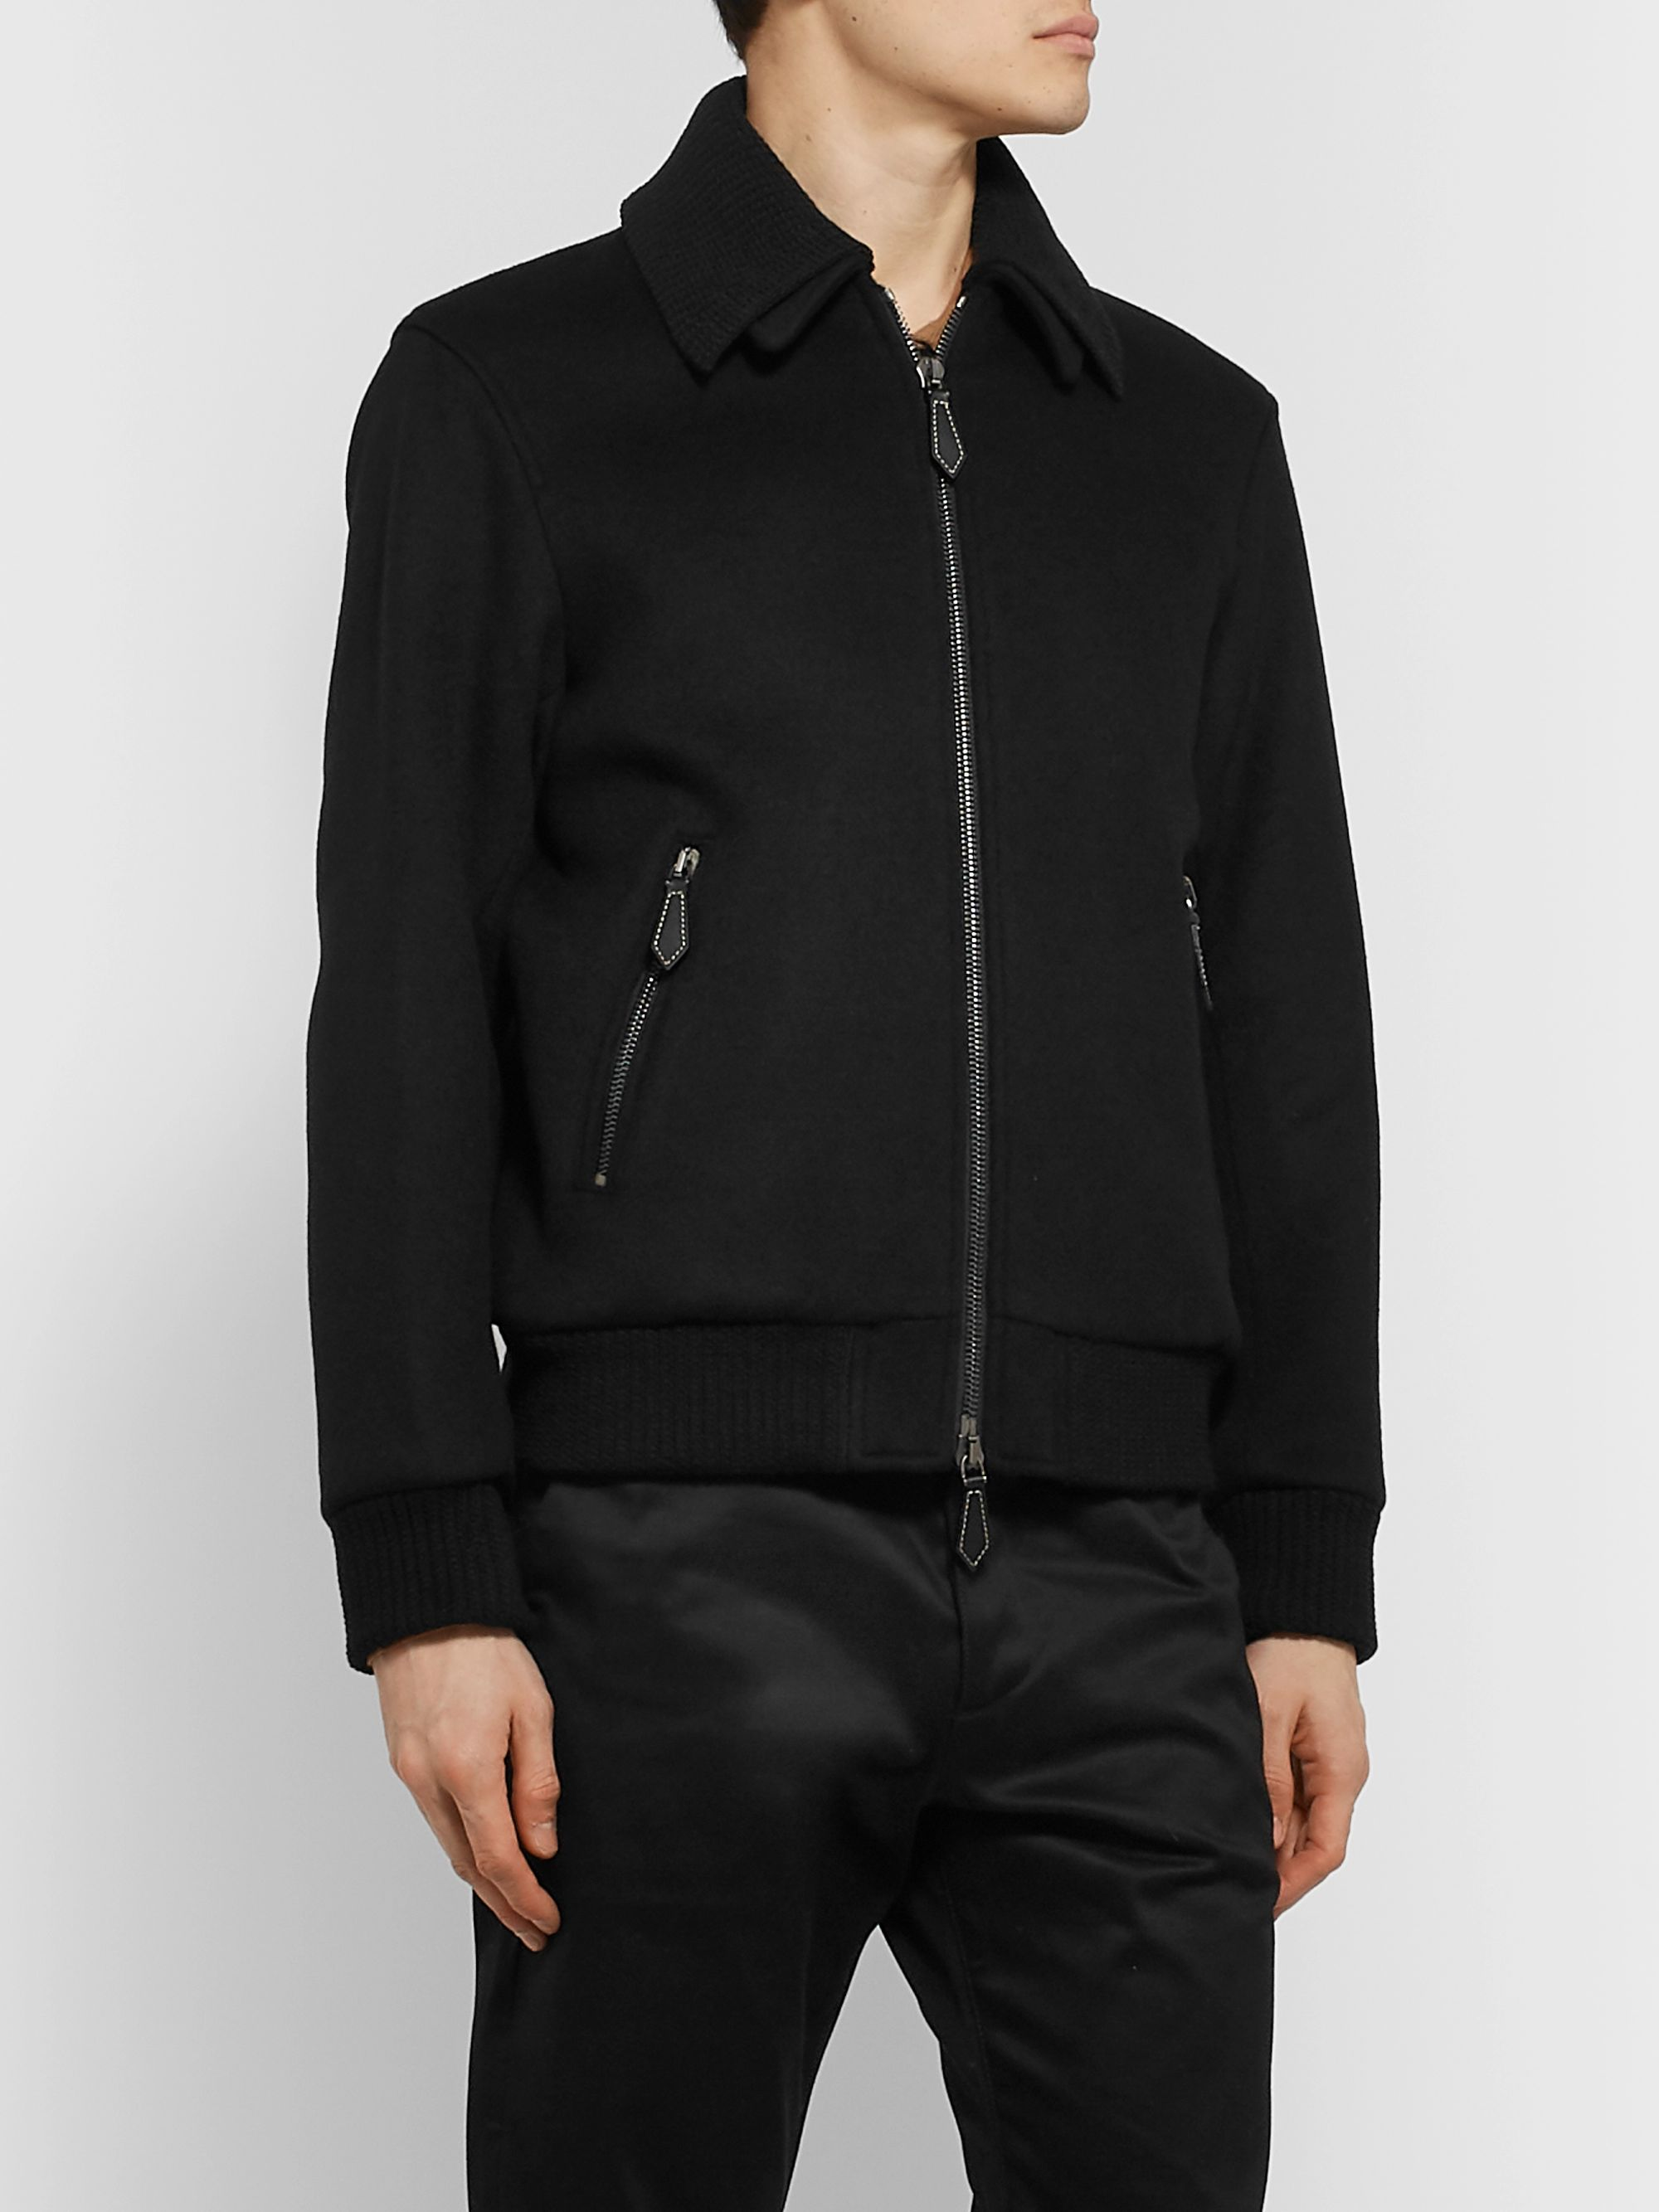 Burberry Virgin Wool and Cashmere-Blend Bomber Jacket